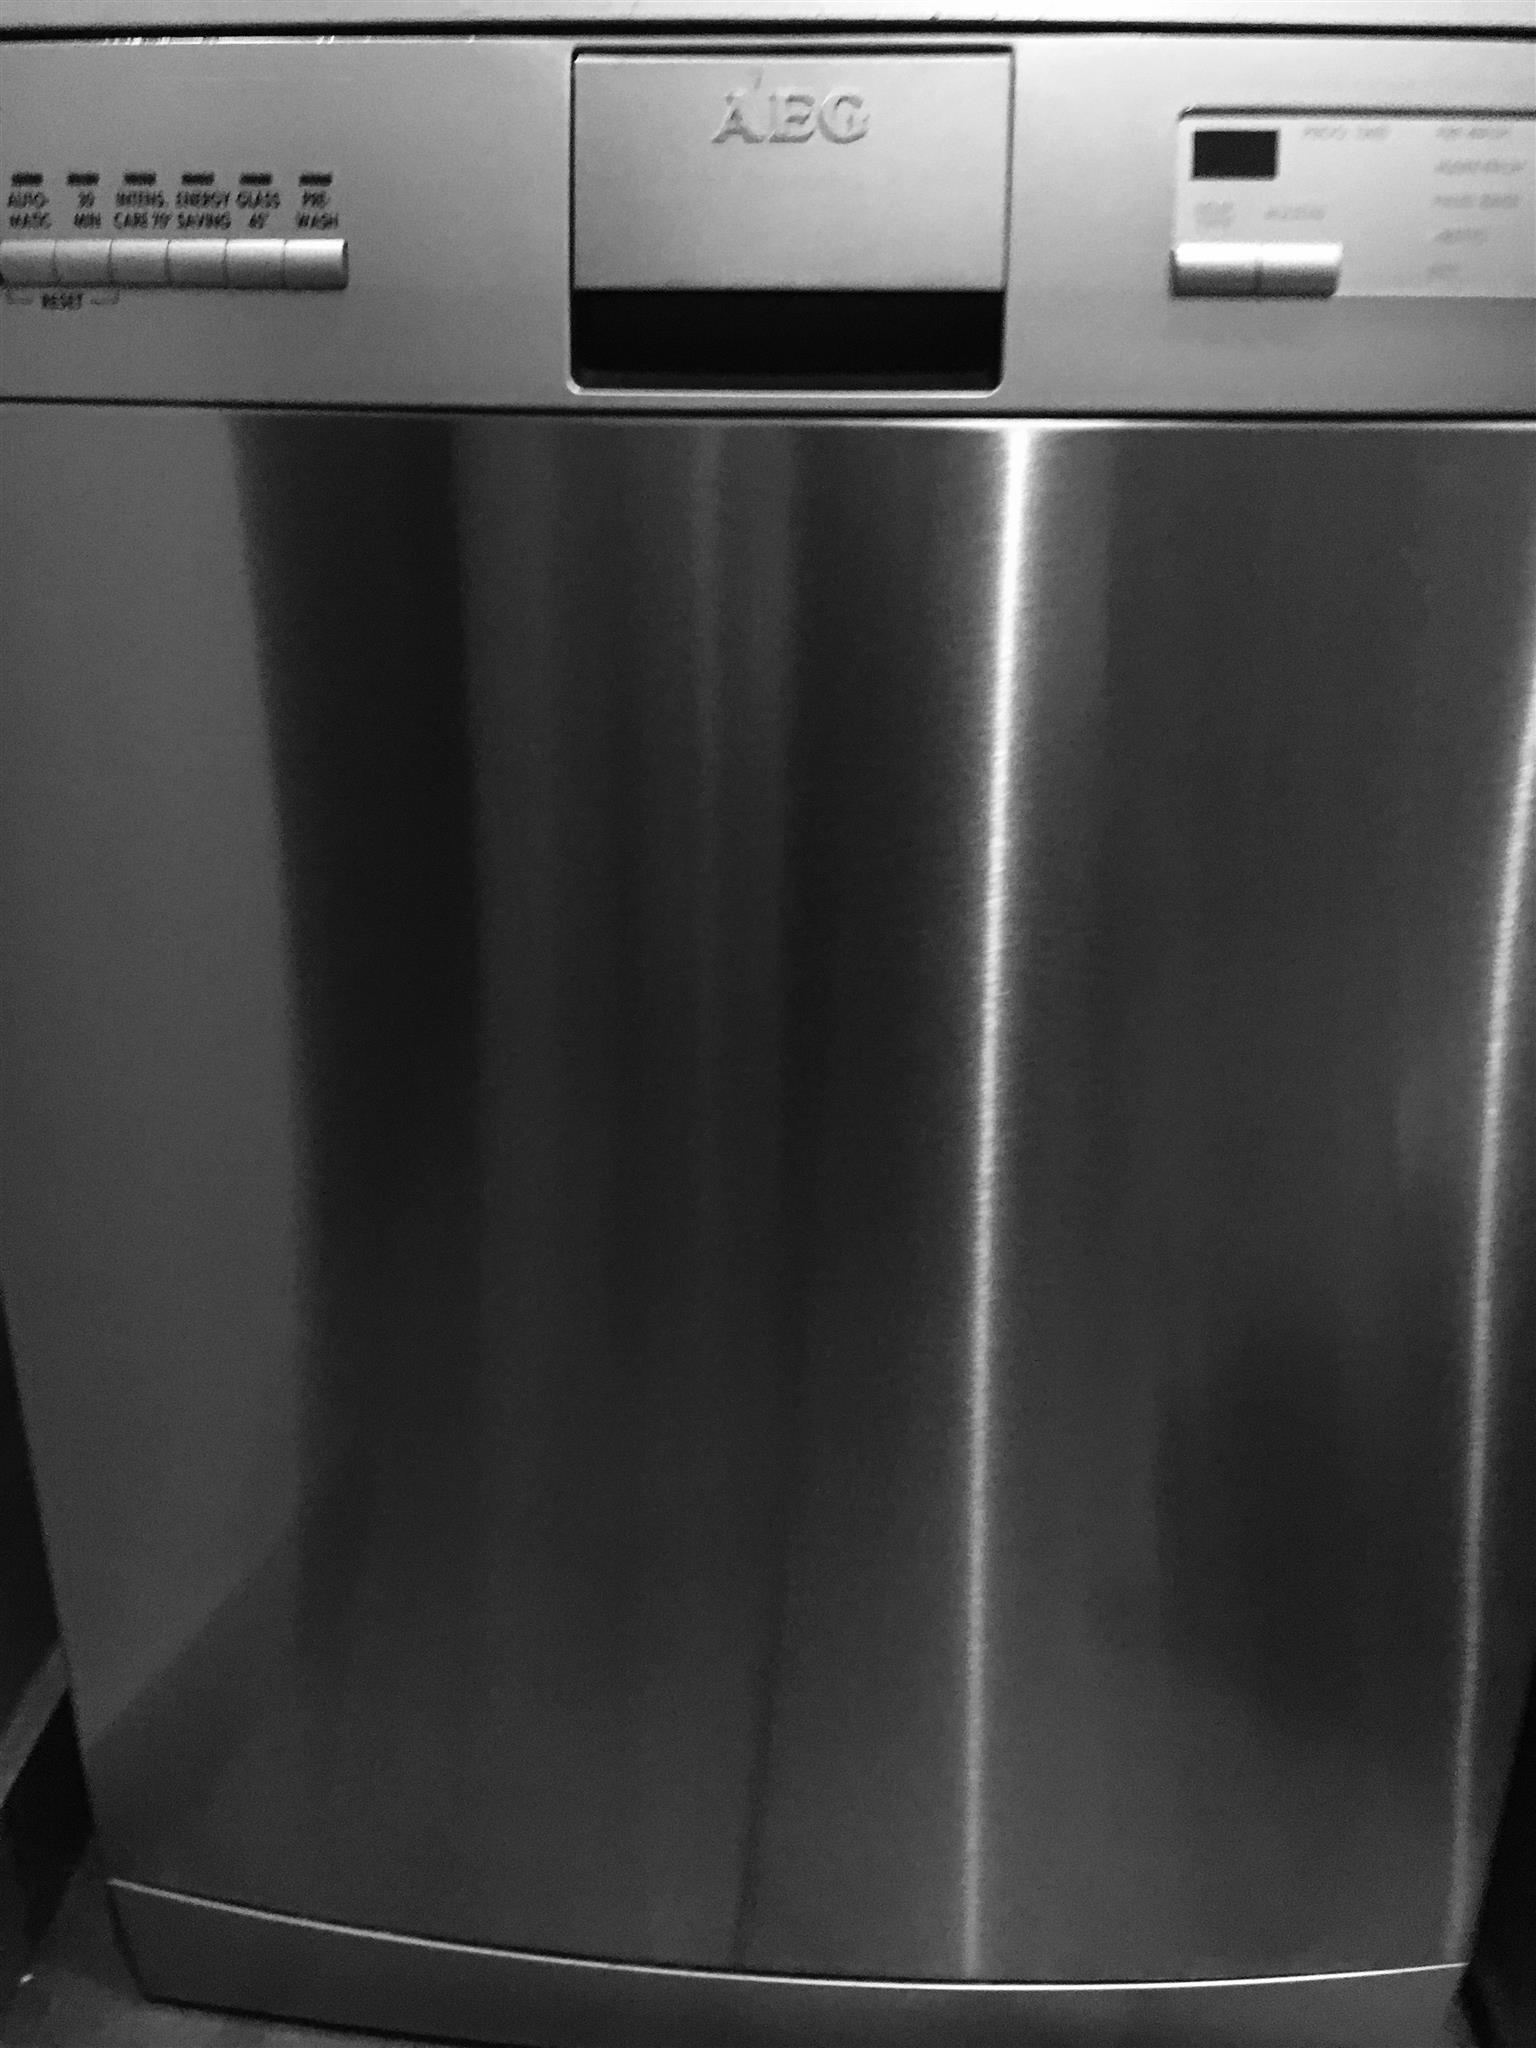 AEG dishwasher for spares